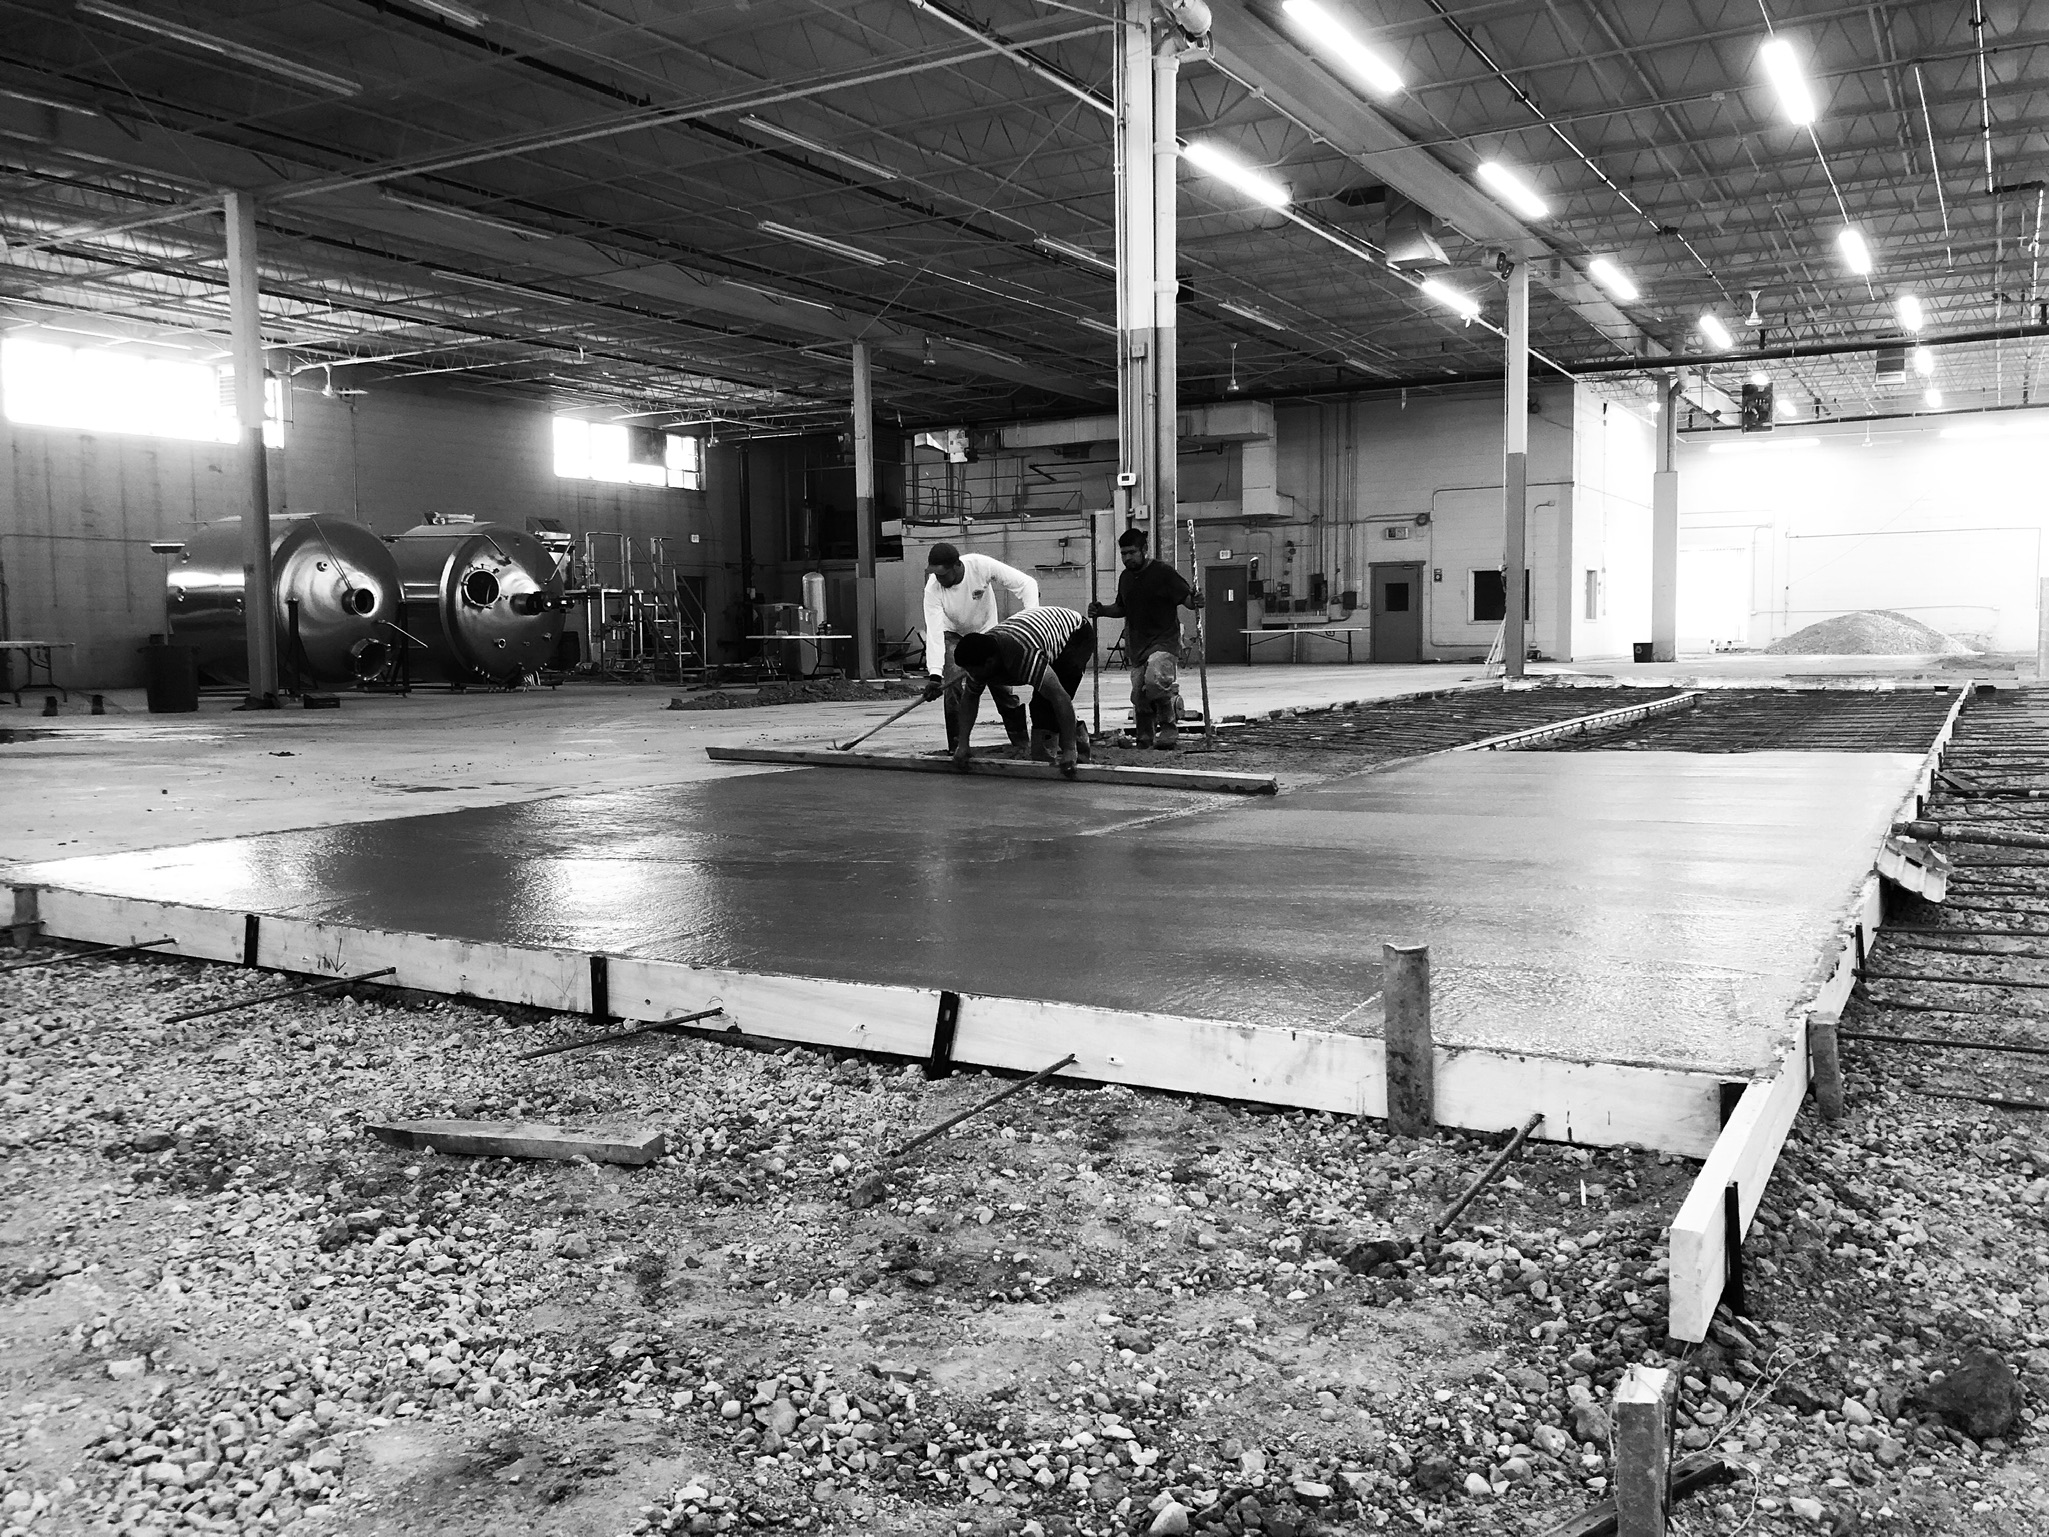 Creating the flooring for the beer production area.